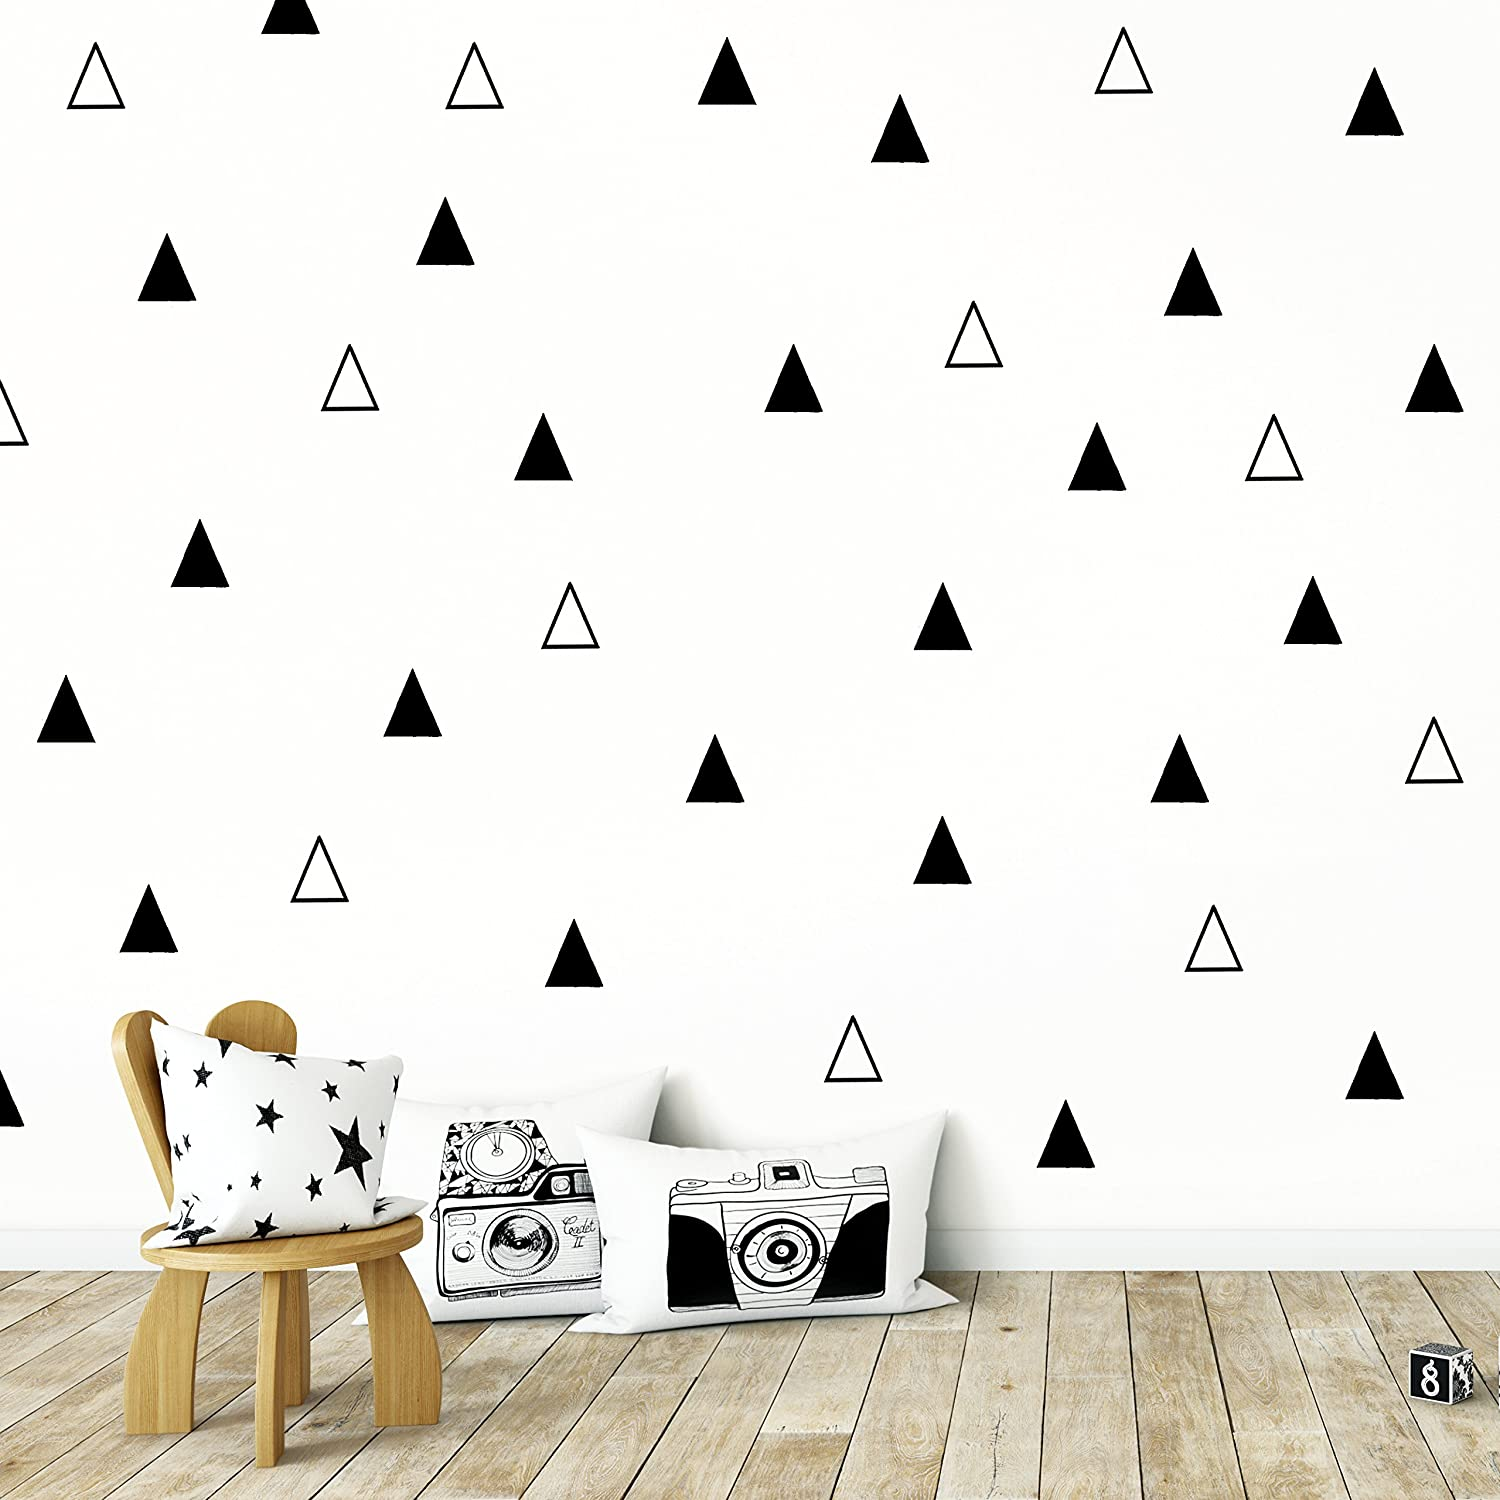 Adhesive Black Tribal Triangles for Kids Baby Bedroom Decoration. Wall Vinyl Sticker Decal Decor Nursery.